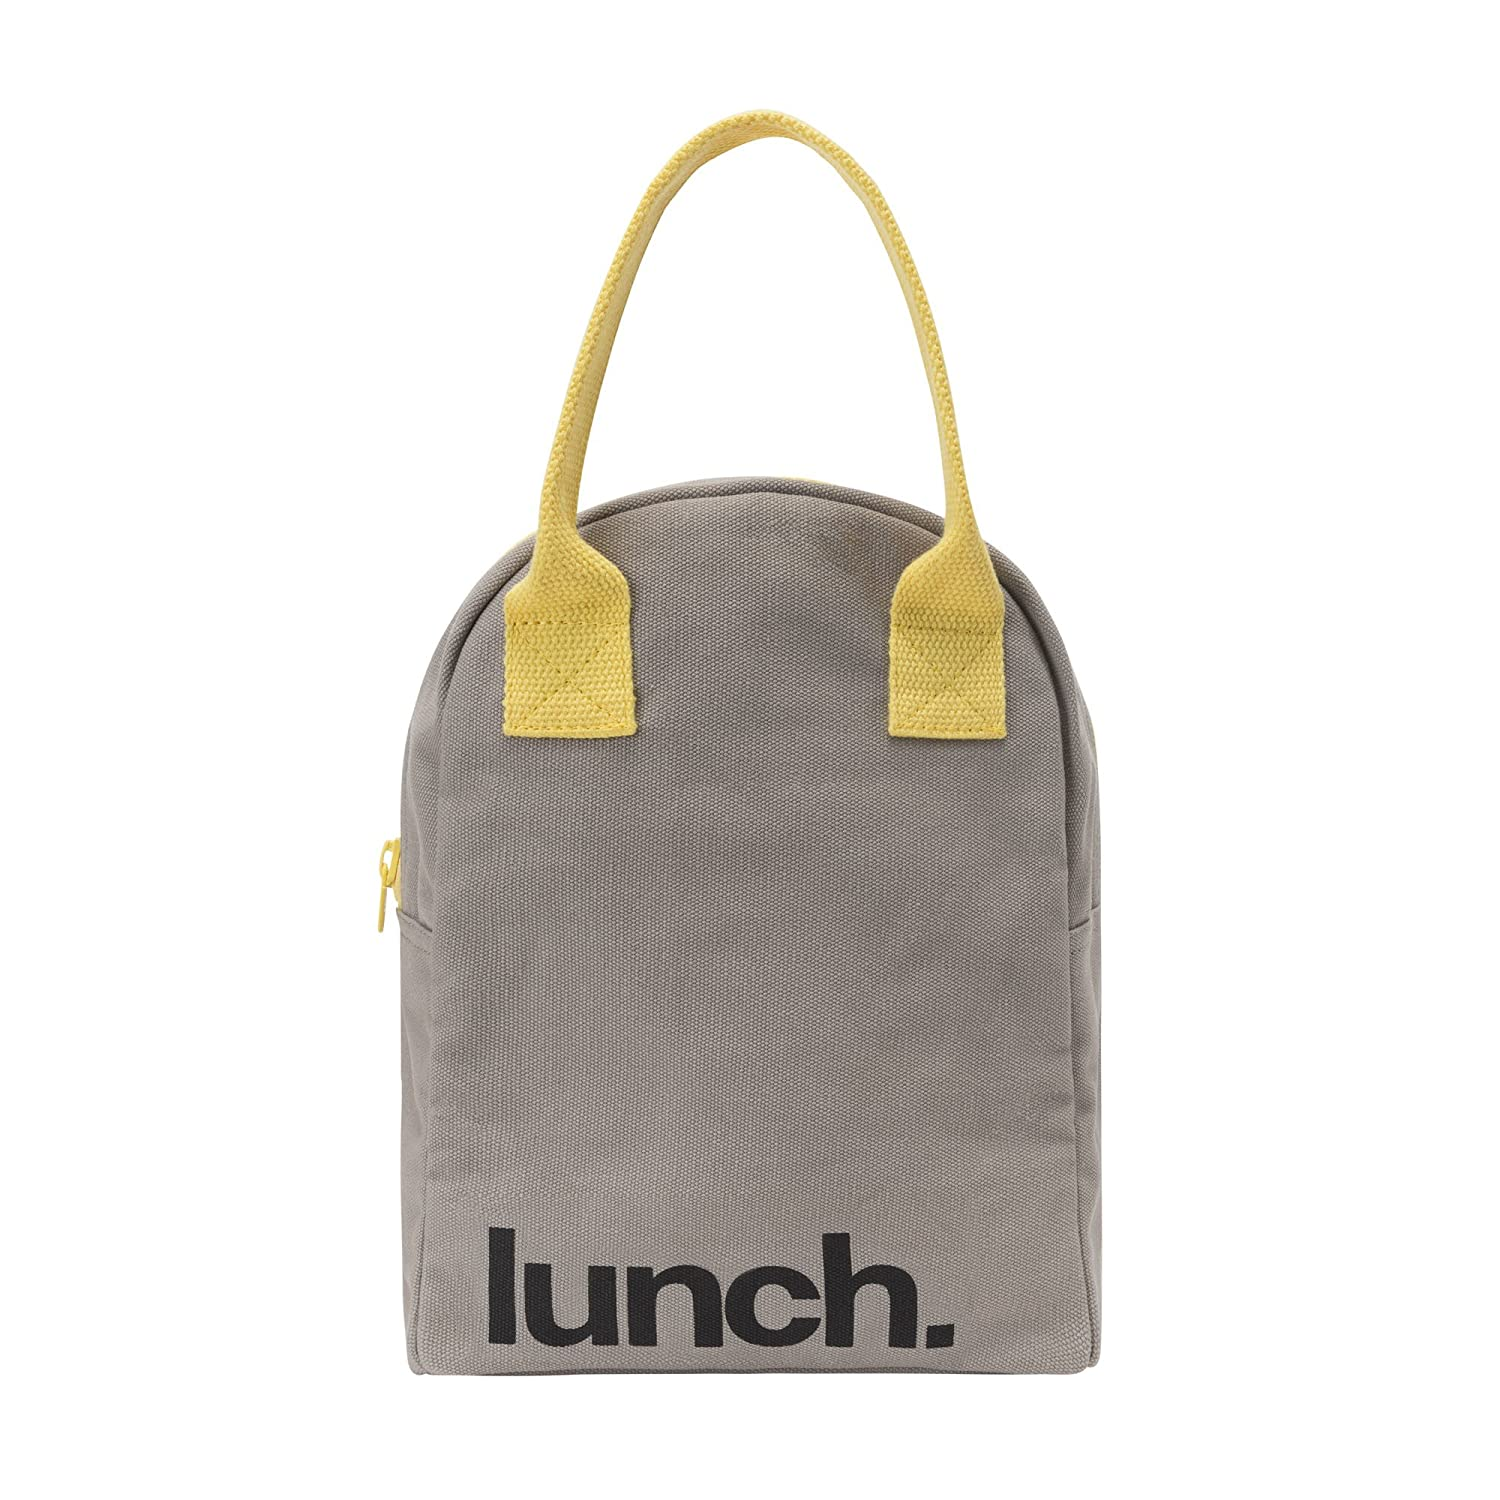 FLUF ZLU-LUG-03 Zipper Lunch Bag, Regular, Gray Fluf Textile Goods Inc.